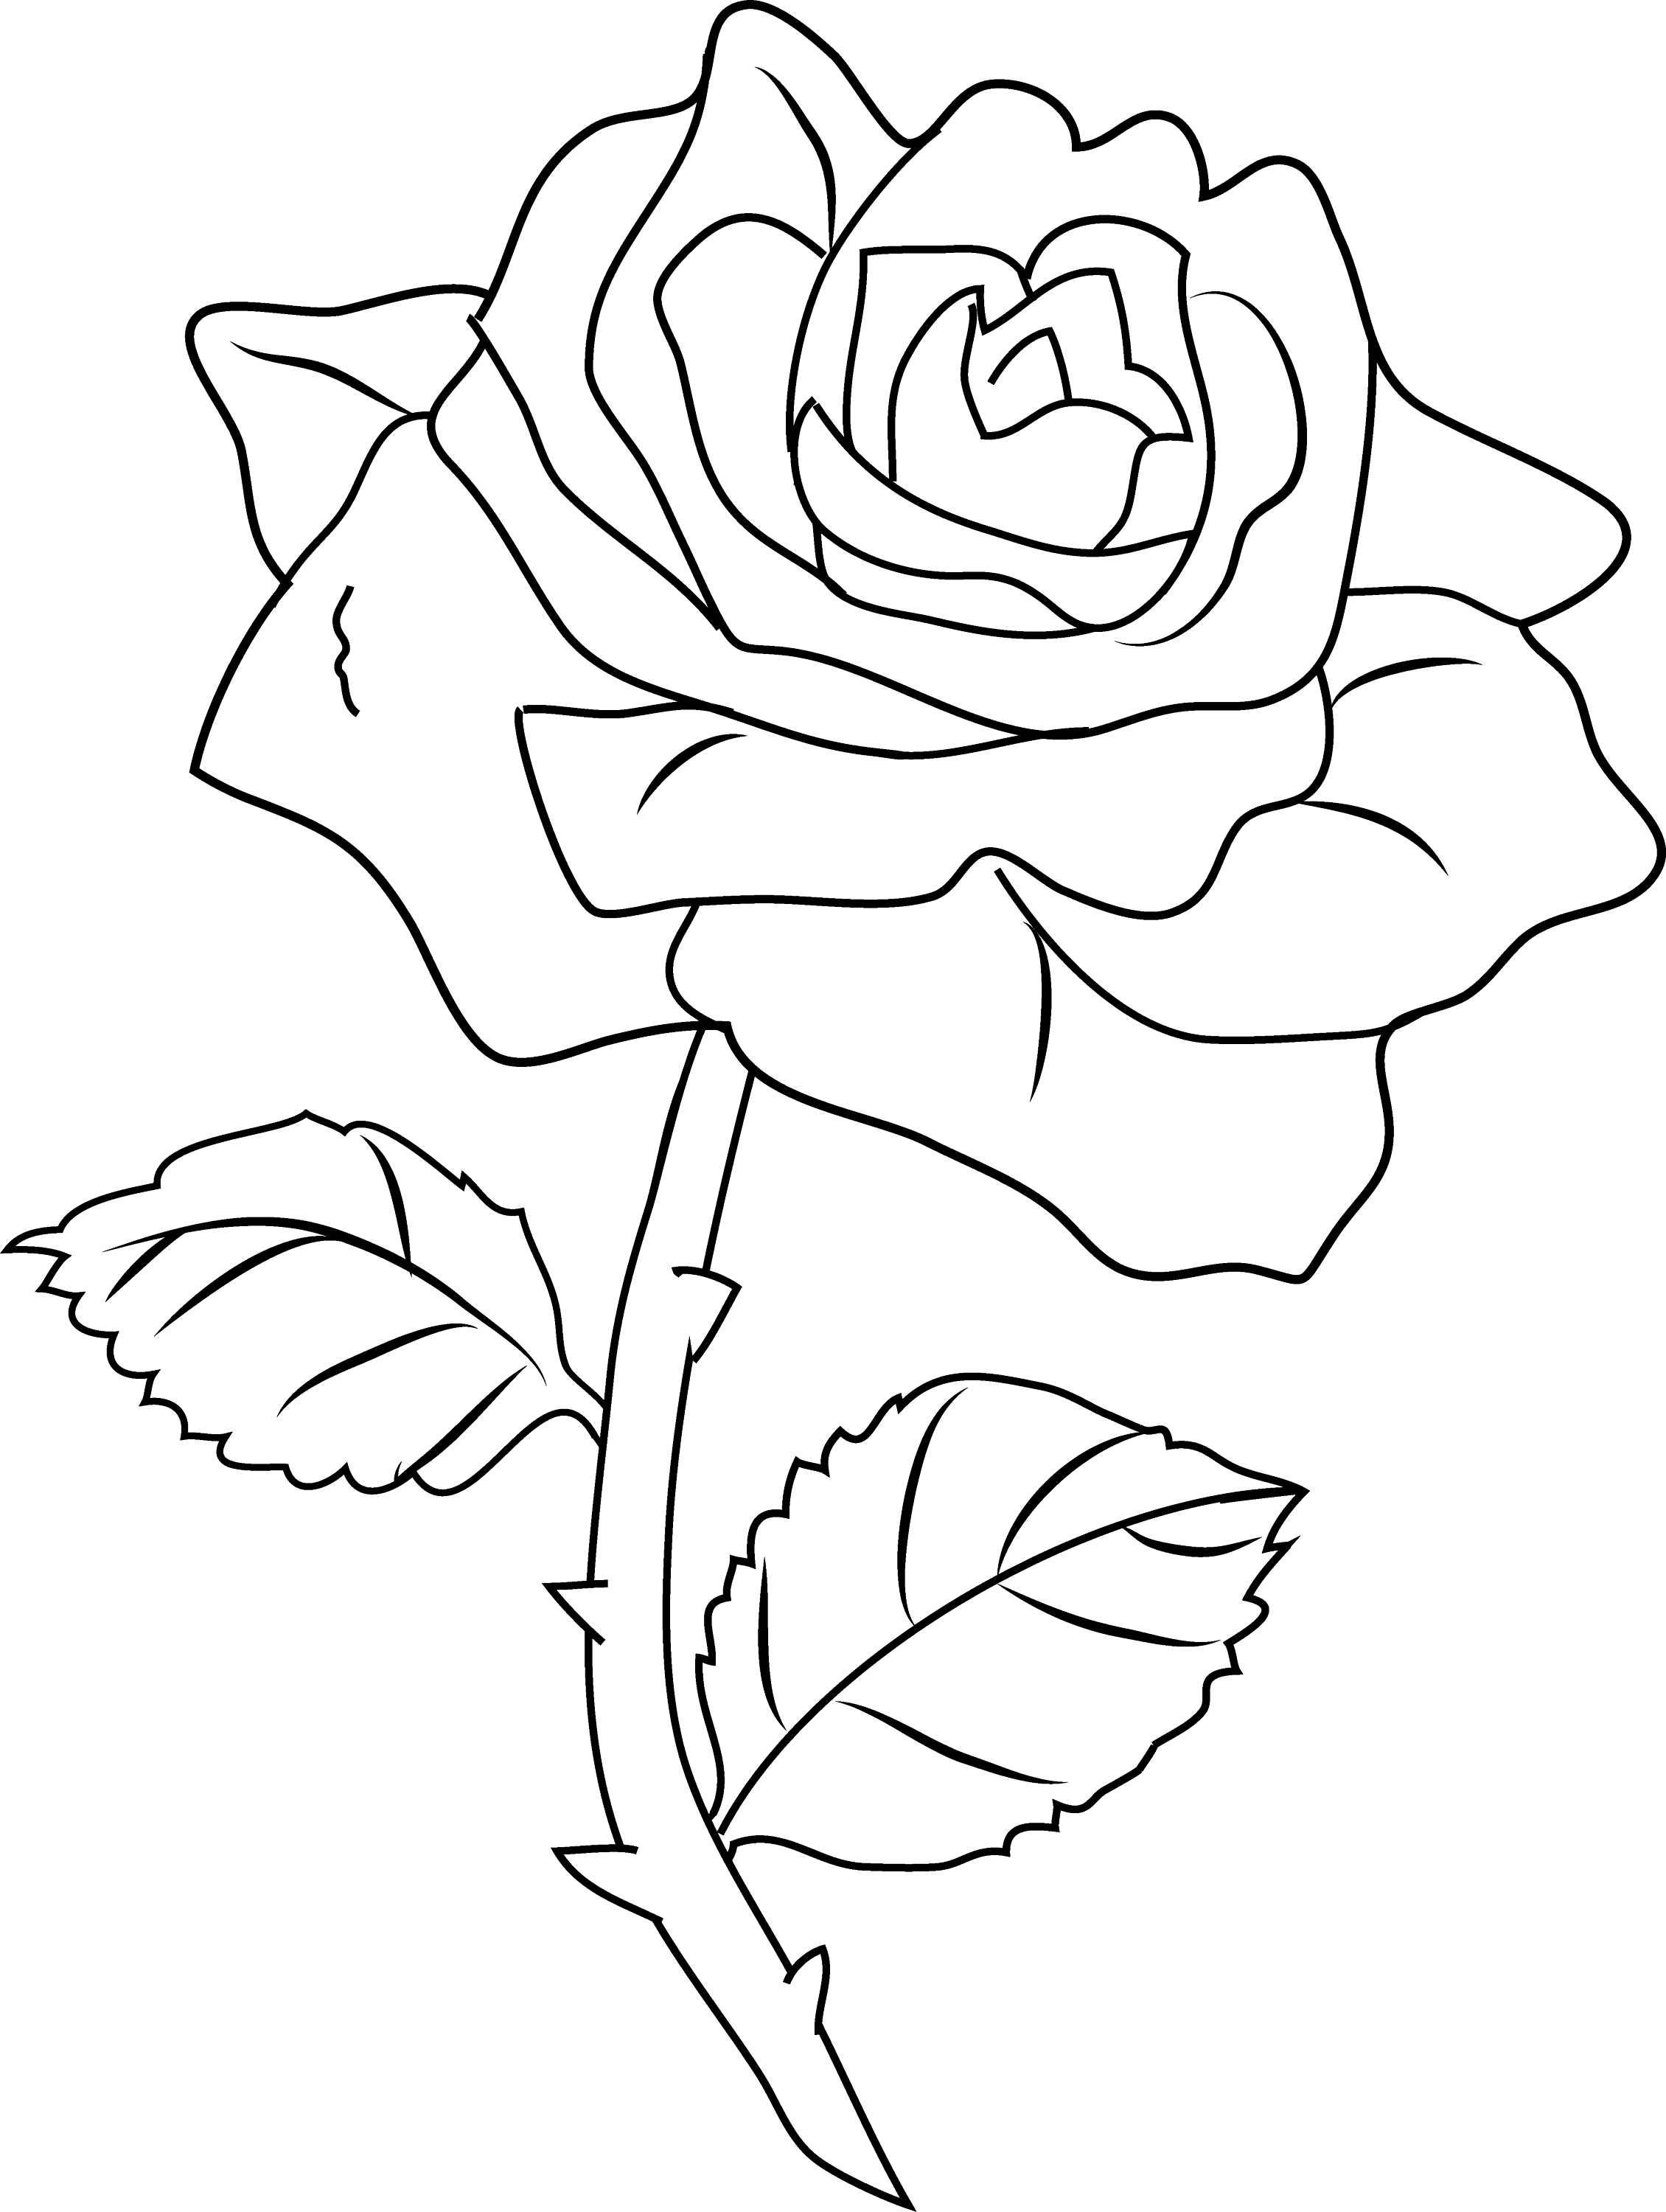 coloring flower png free printable flower coloring pages 16 pics how to coloring flower png 1 1